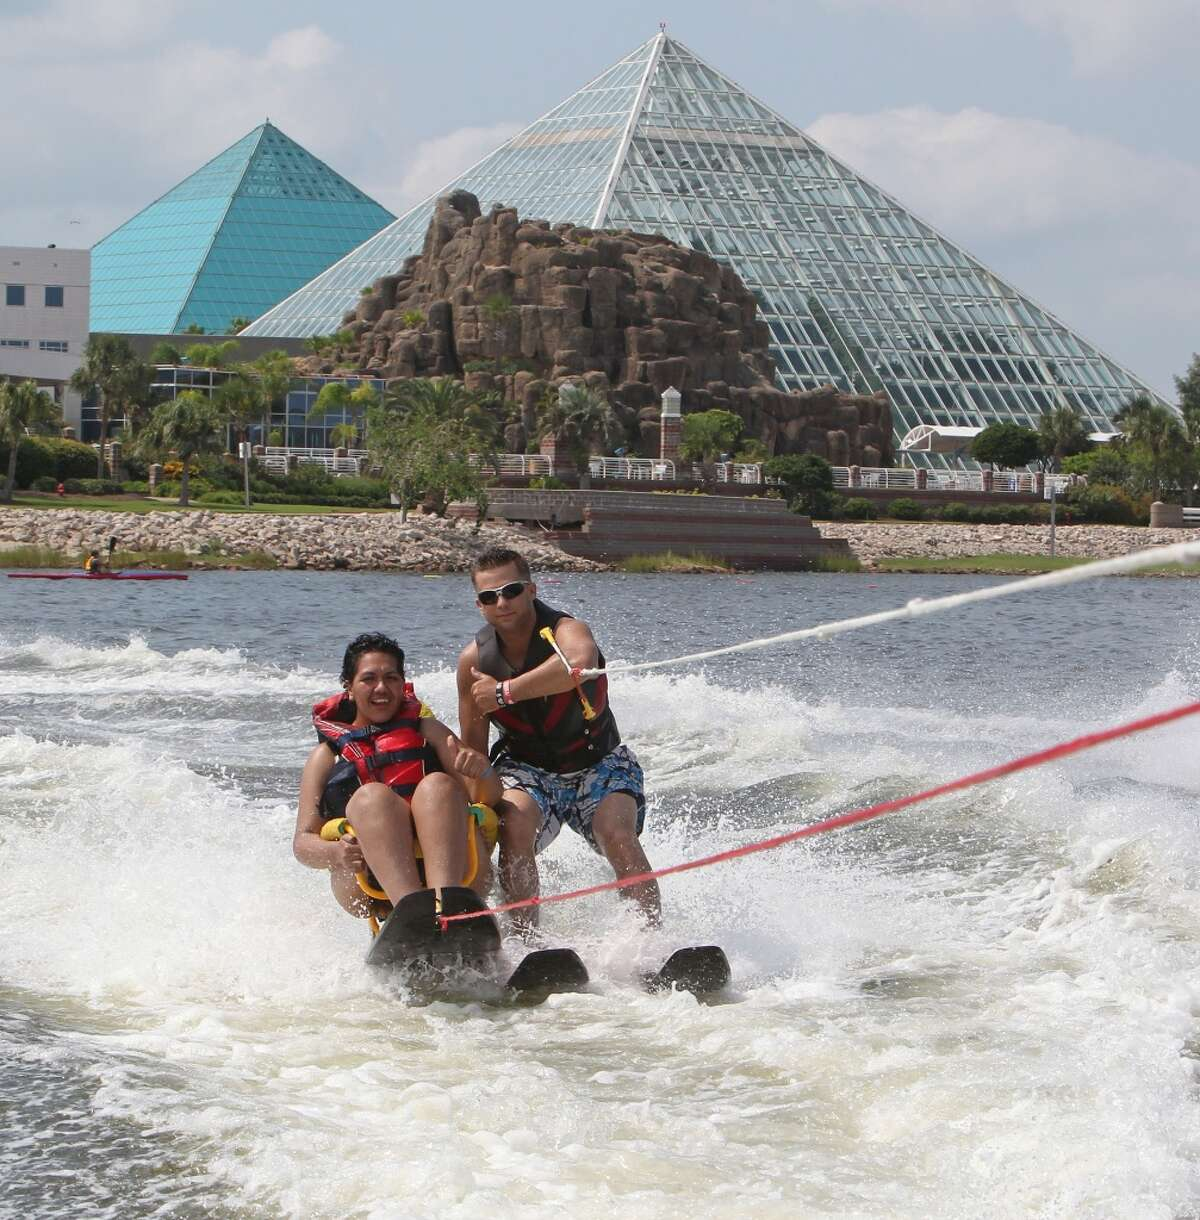 Much like their Egyptian counterparts, will Moody Gardens' pyramids become a thing of the past? NASA scientists warn that the Antarctic melt is now unstoppable, and its consequences are heading toward the Gulf Coast. Keep clicking to see what we would miss about Galveston if the island does indeed go underwater.